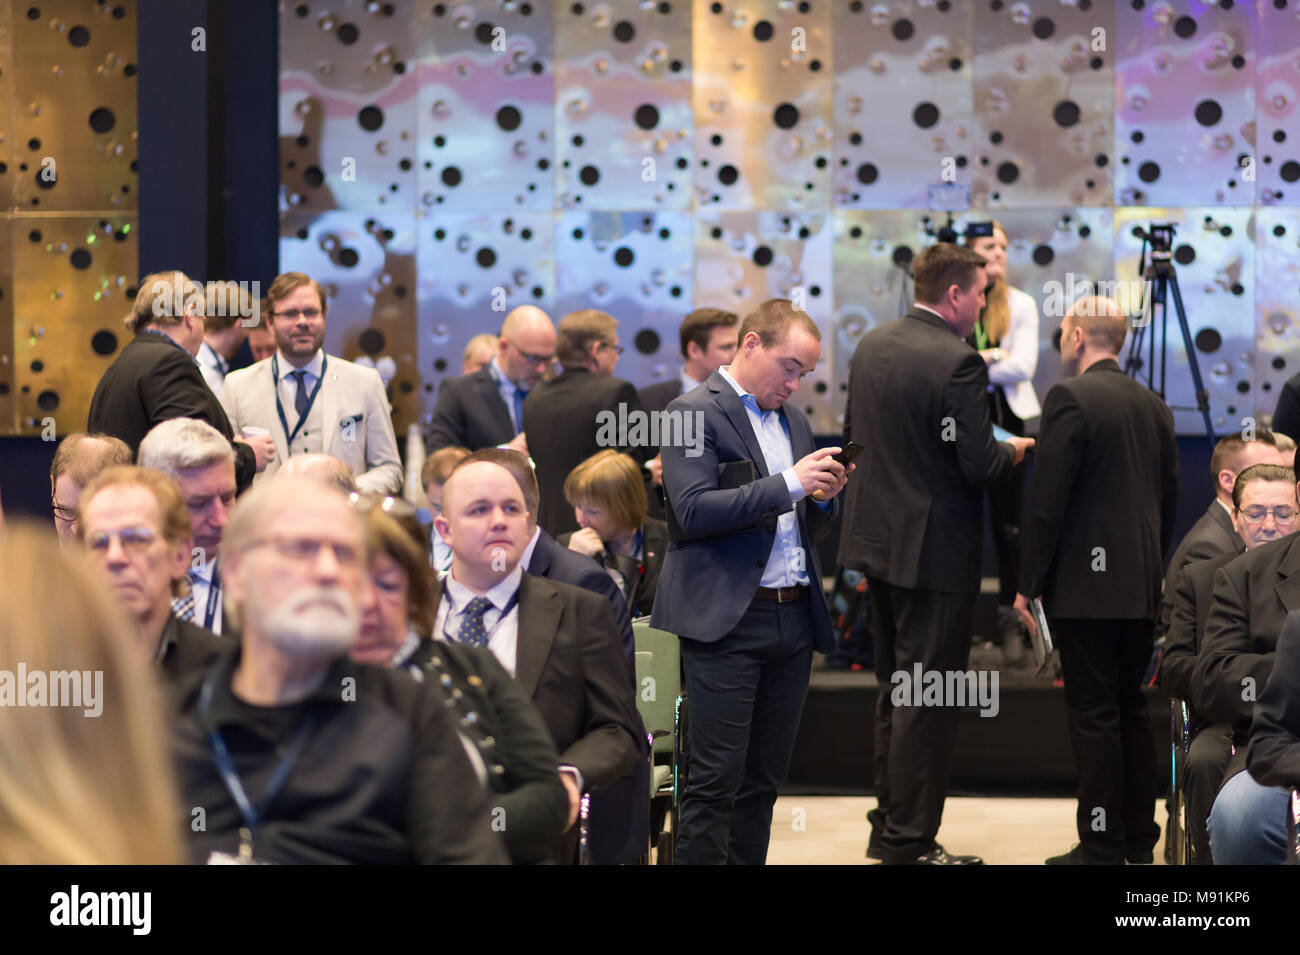 Stockholm, Sweden, March 17, 2018. Sweden Democrats (SD) Election Conference 2018. Kent Ekeroth was not on the parliamentary list and will not (after  - Stock Image